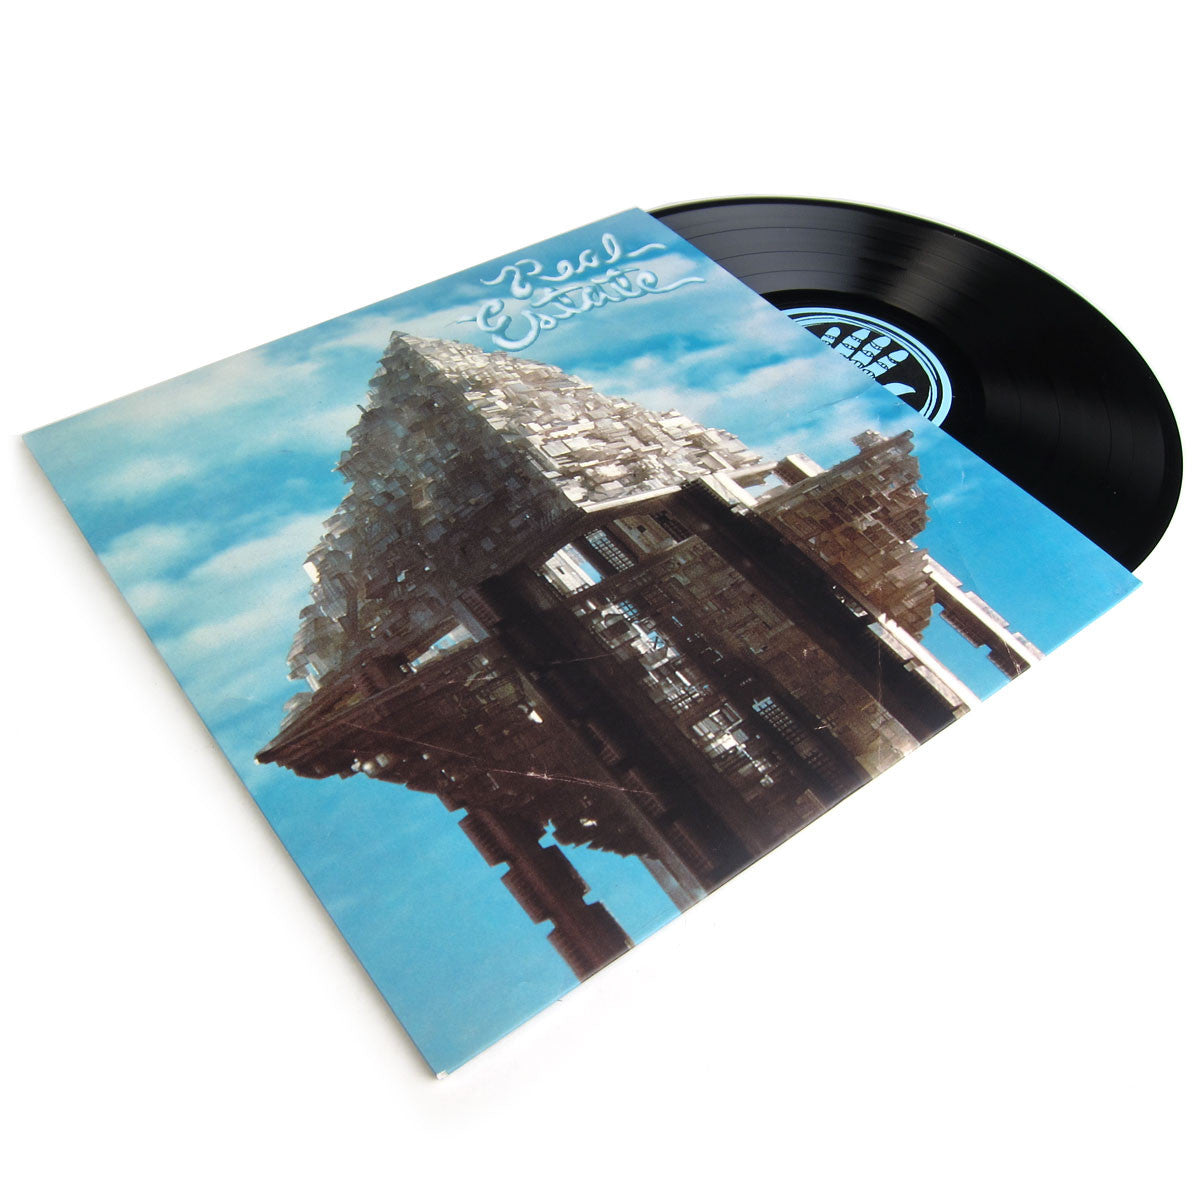 Real Estate: Real Estate (Free MP3) Vinyl LP